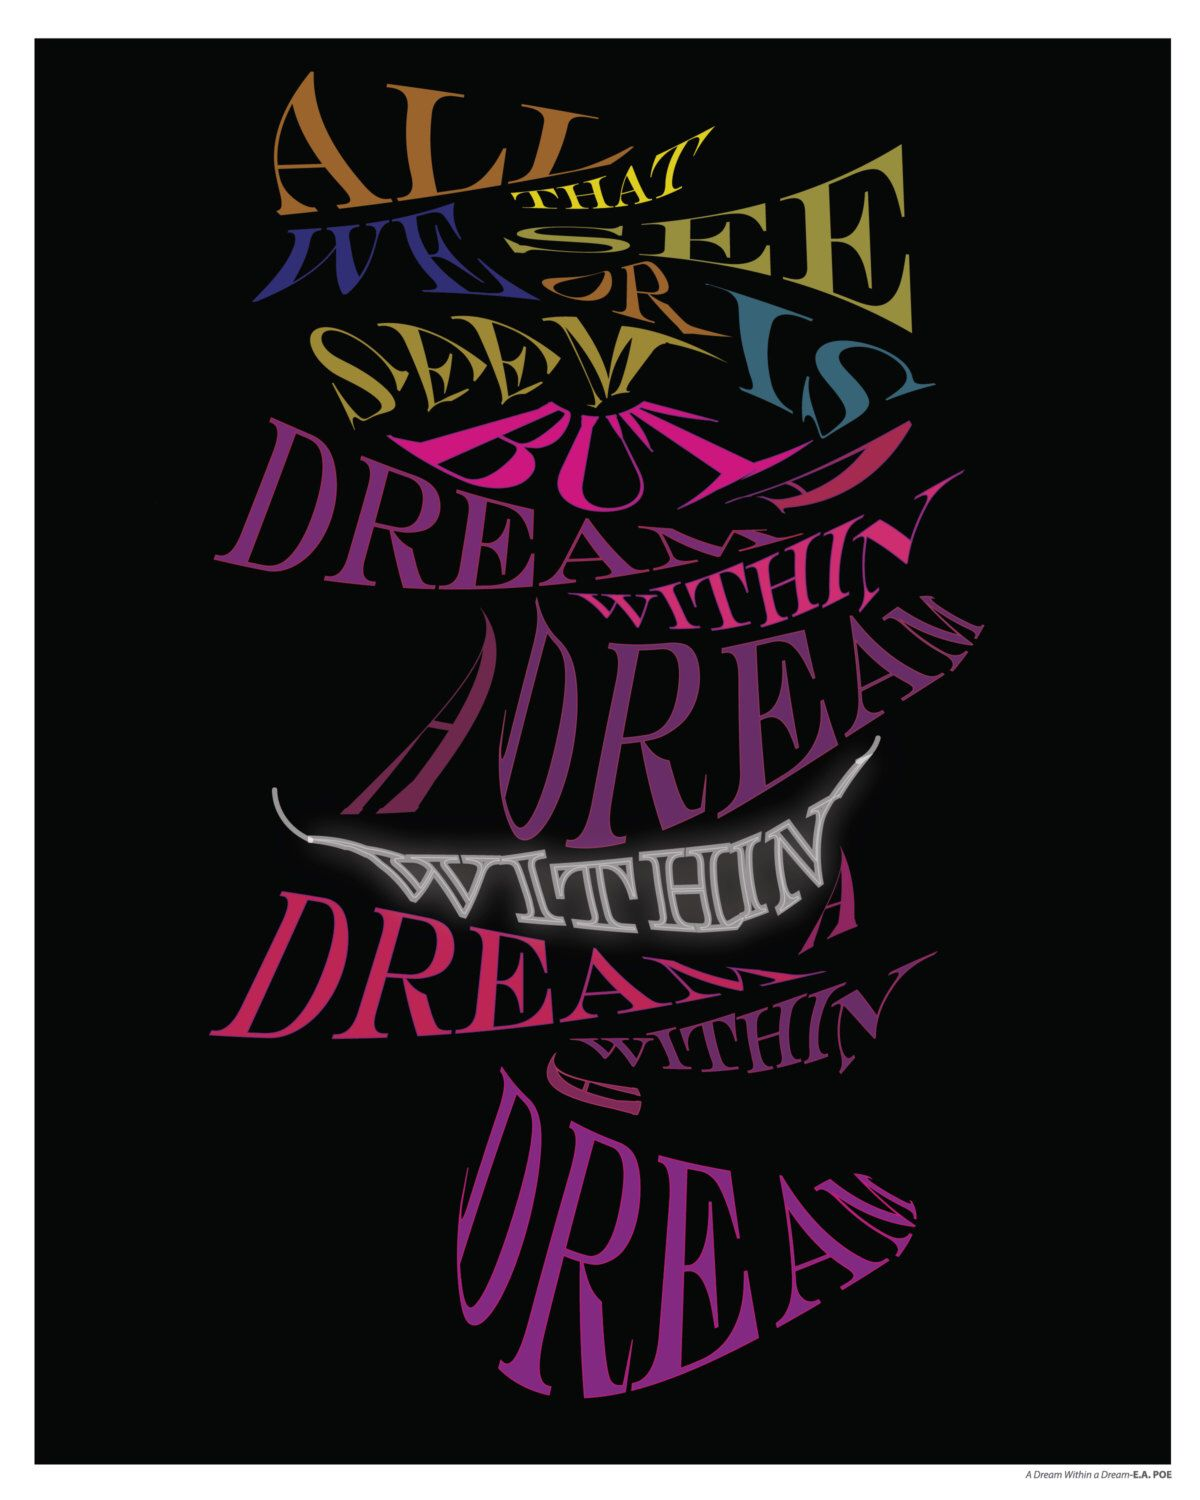 Dream within a Dream... Through the Looking Glass Inspired Quote Poster by sararacedesigns on Etsy https://www.etsy.com/listing/269246198/dream-within-a-dream-through-the-looking